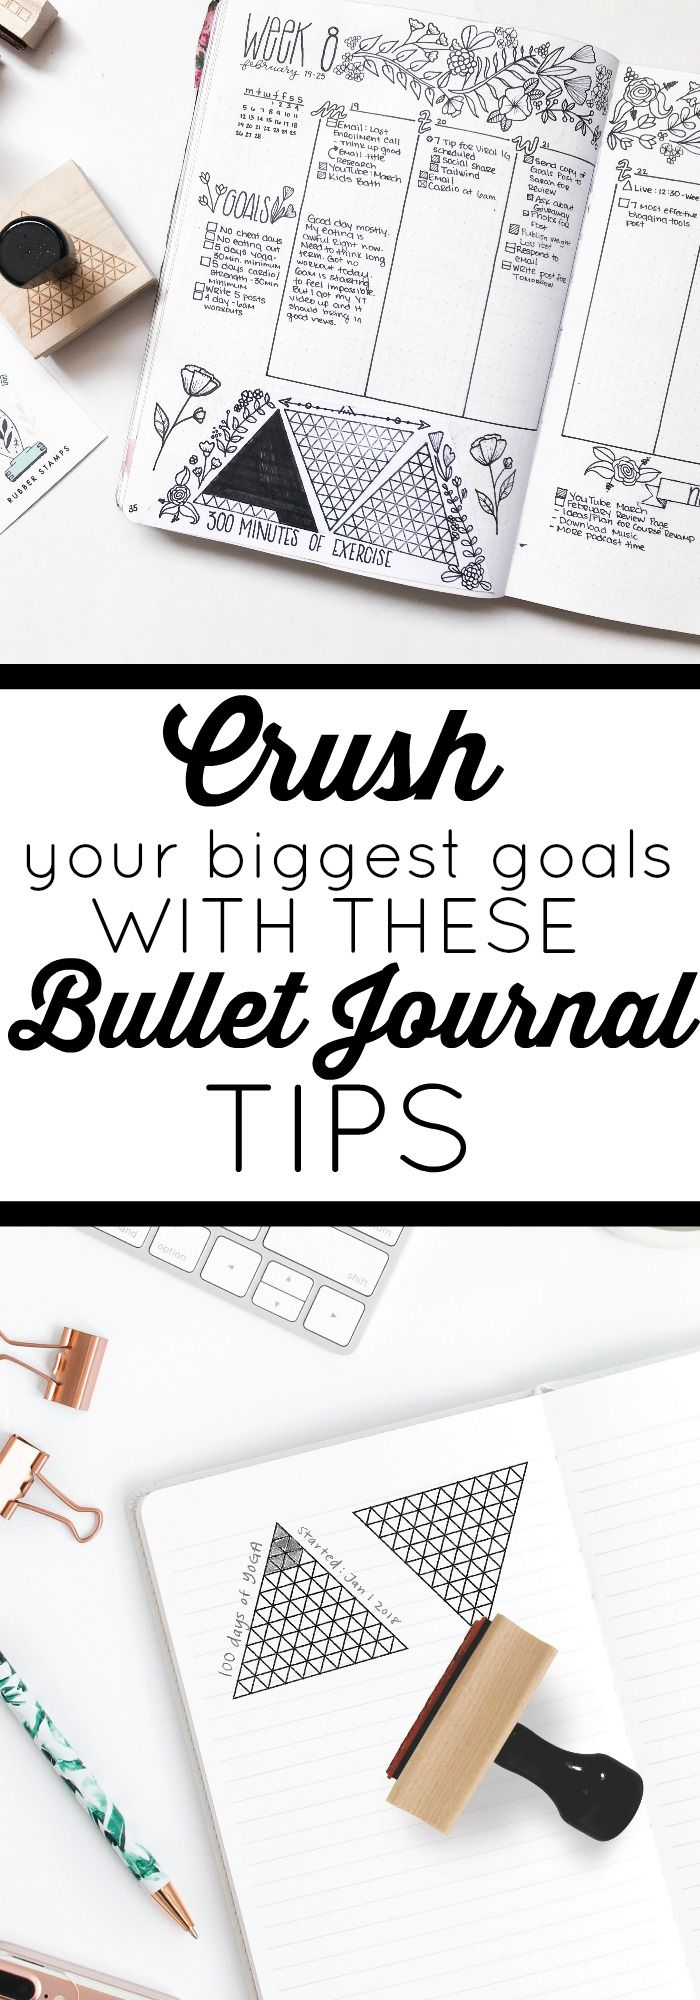 How to Set and Crush Your Biggest Goals in Your Bullet Journal